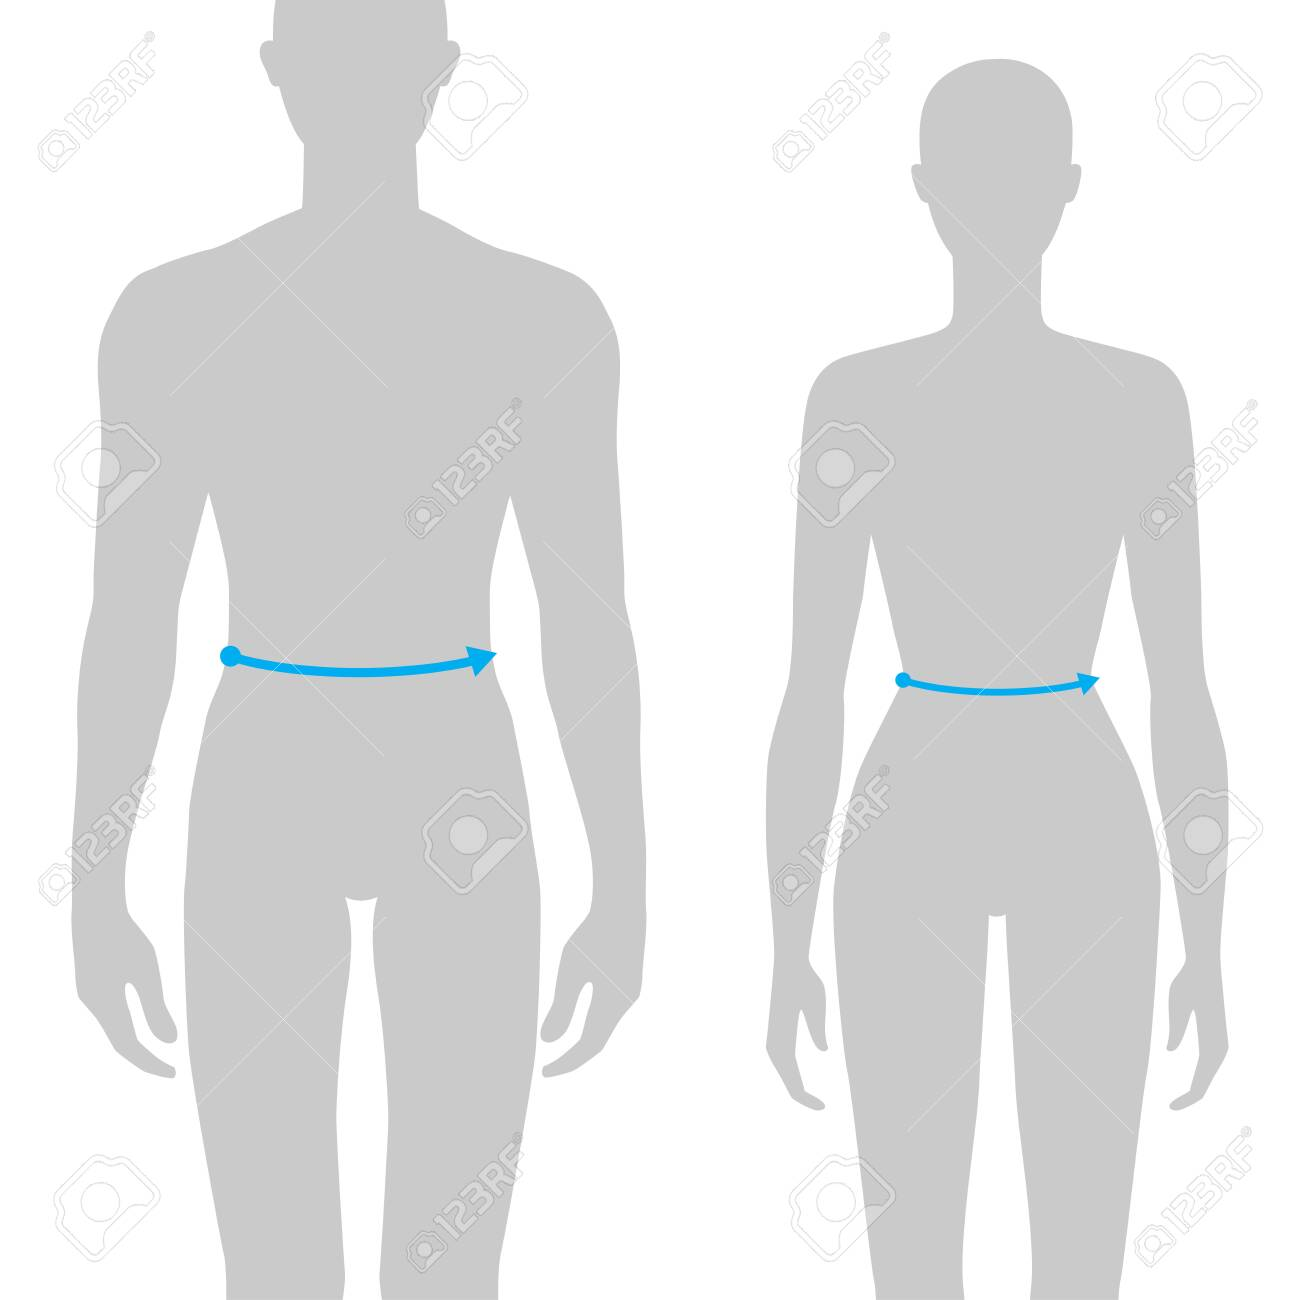 Women and men to do waist measurement fashion Illustration for size chart. 7.5 head size girl and boy for site or online shop. Human body infographic template for clothes. - 142423536